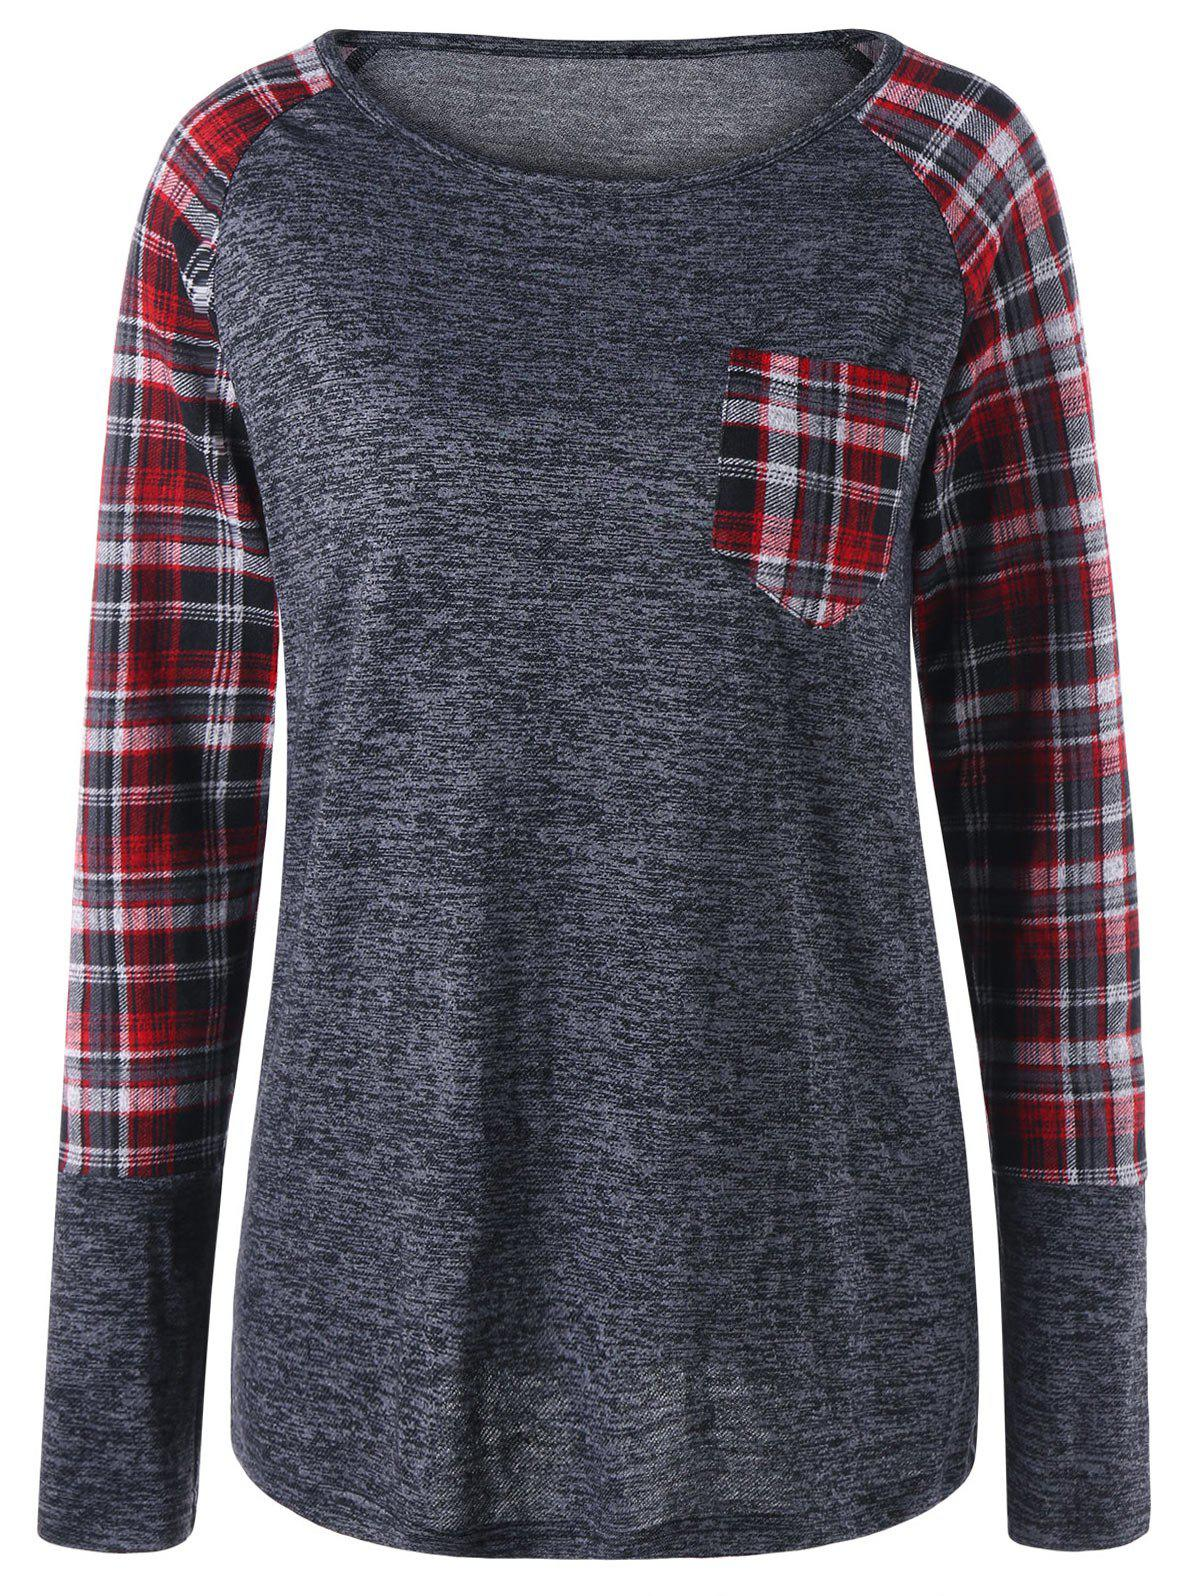 Hot Plaid Patch Pocket Raglan Sleeve Top